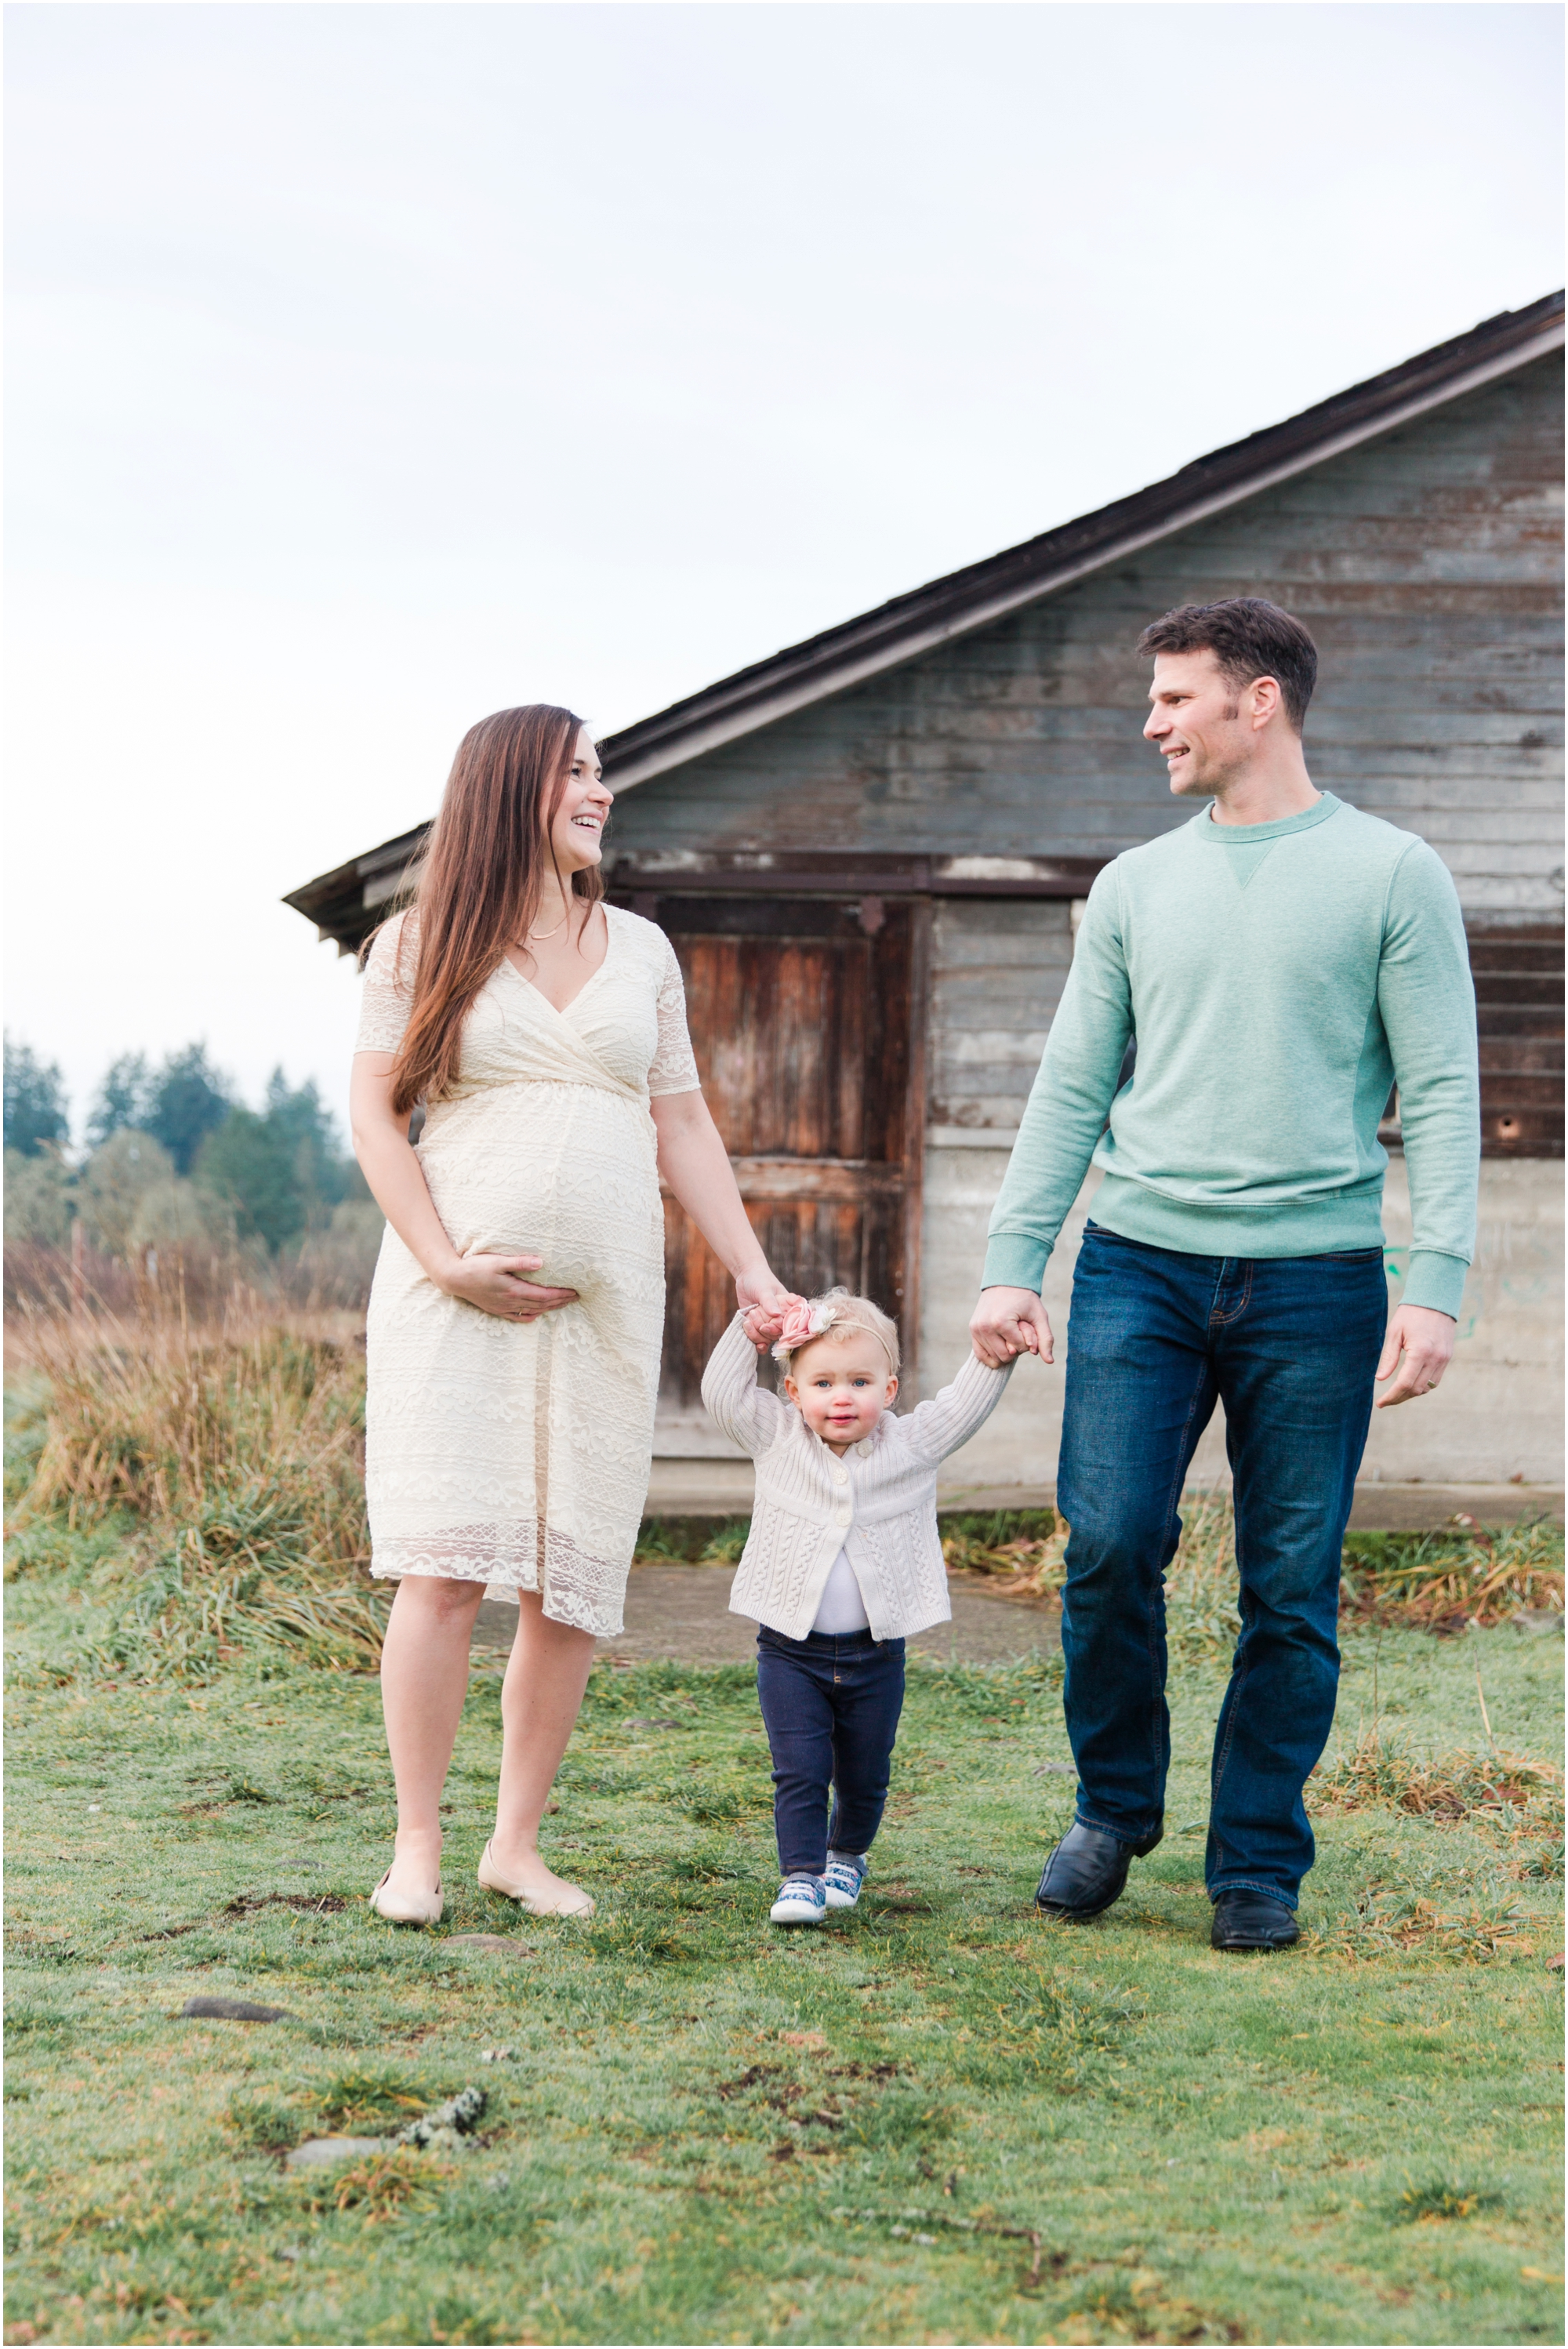 Maternity family photos by Briana Calderon Photography based in the Greater Seattle & Tacoma, WA_1023.jpg